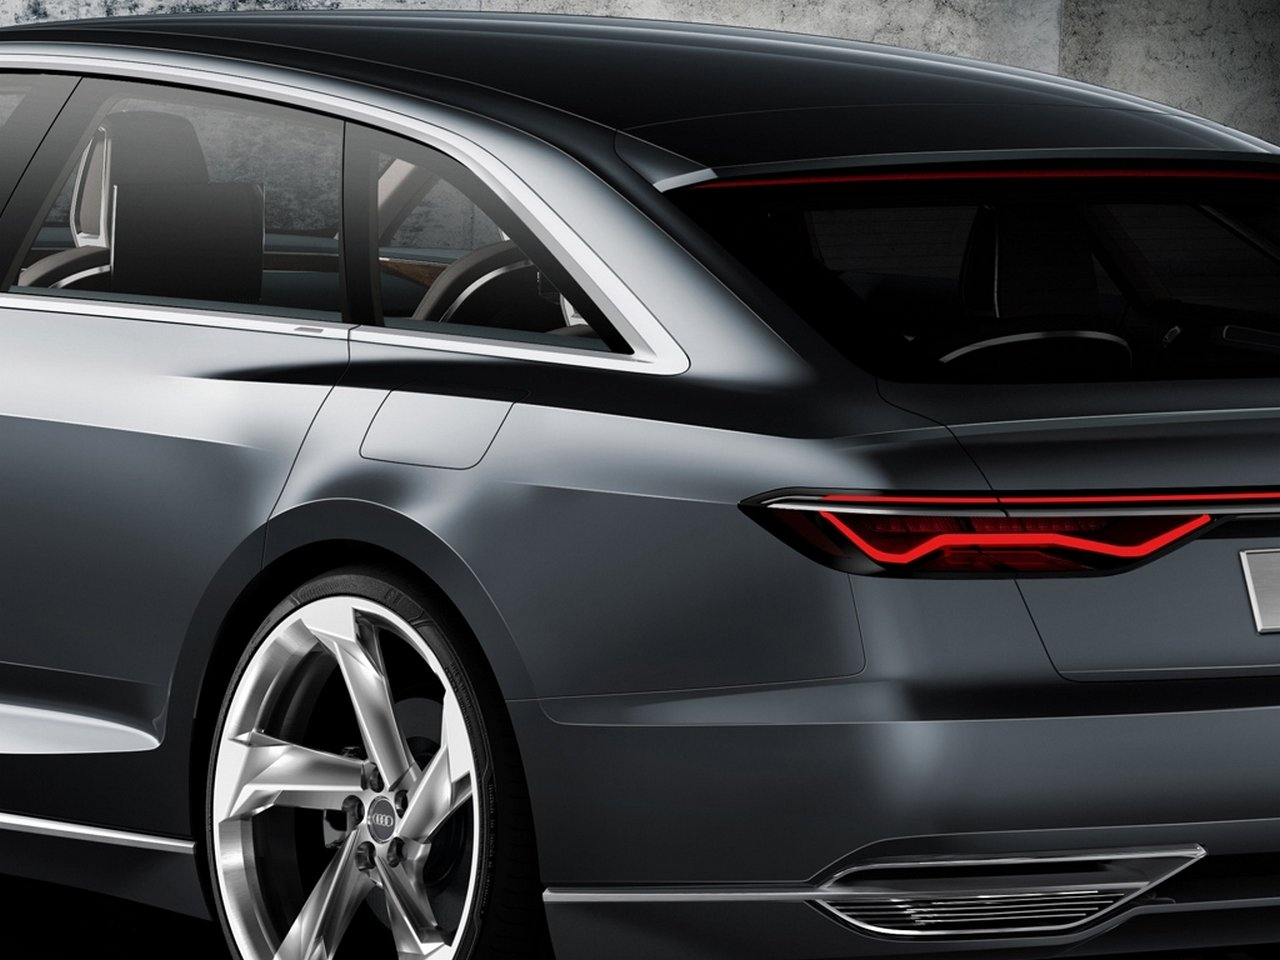 ginevra-2015-Audi-prologue-Avant-0-100_7